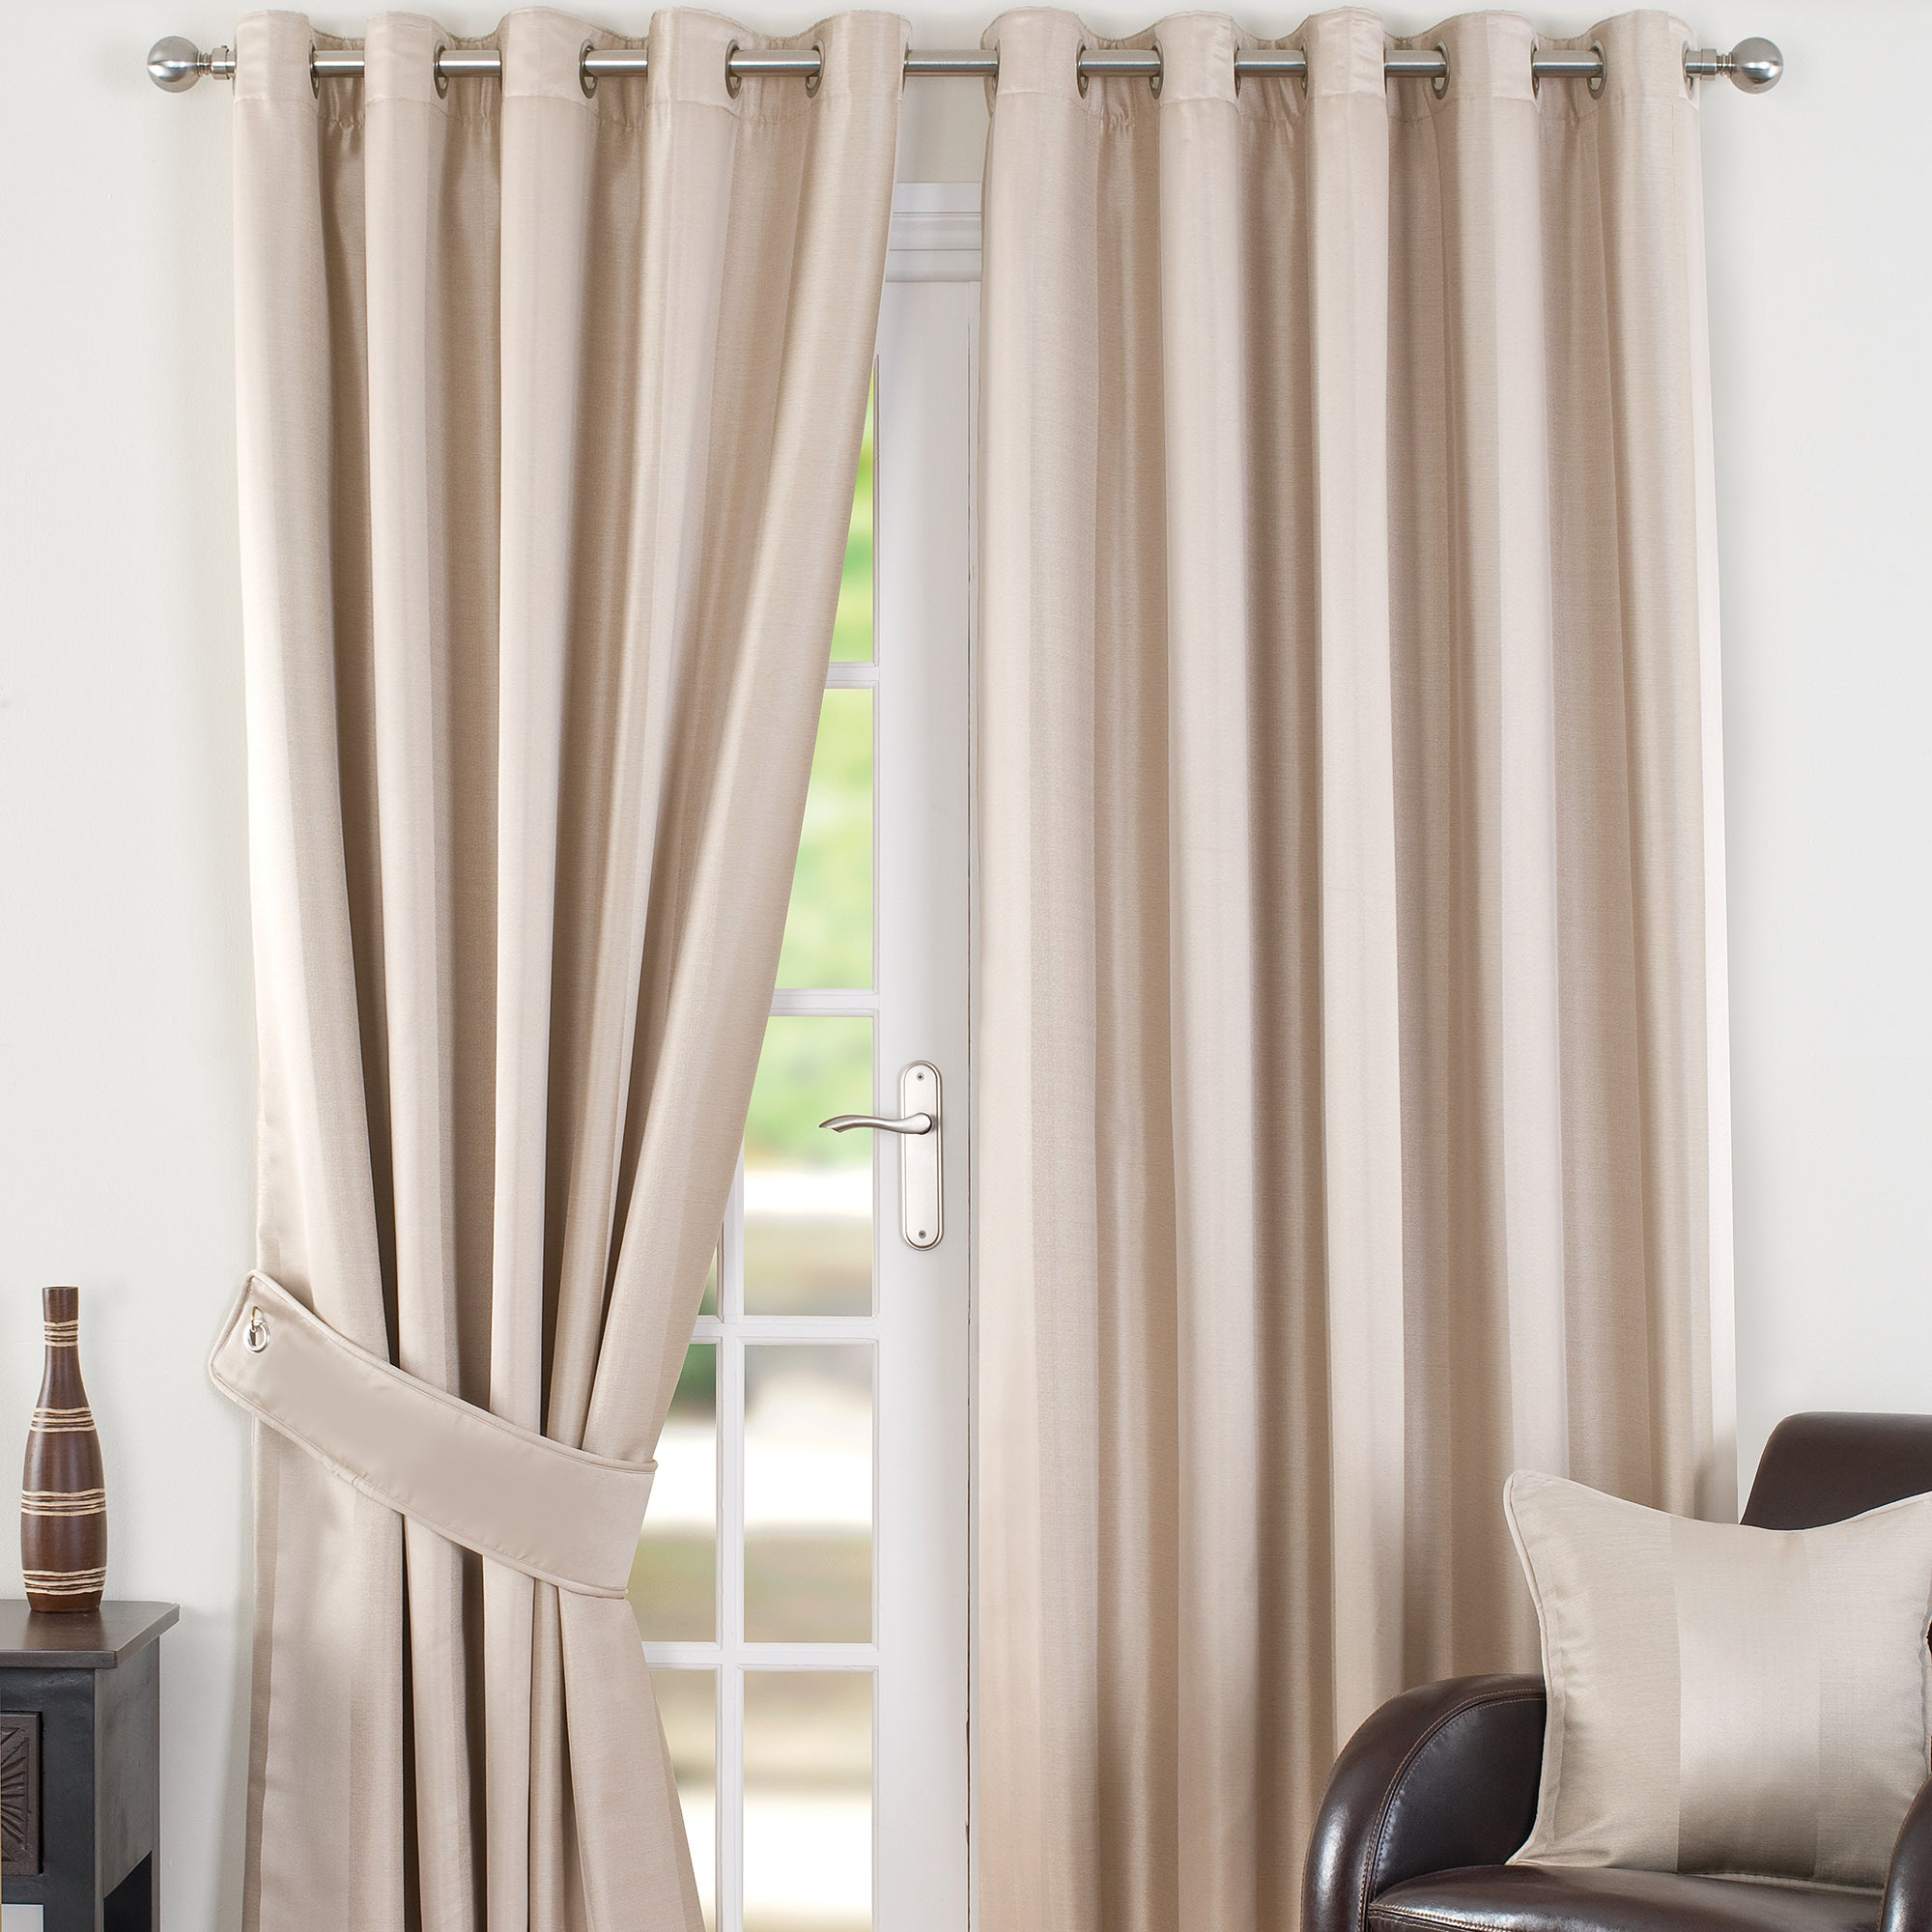 Cream Monaco Lined Eyelet Curtains